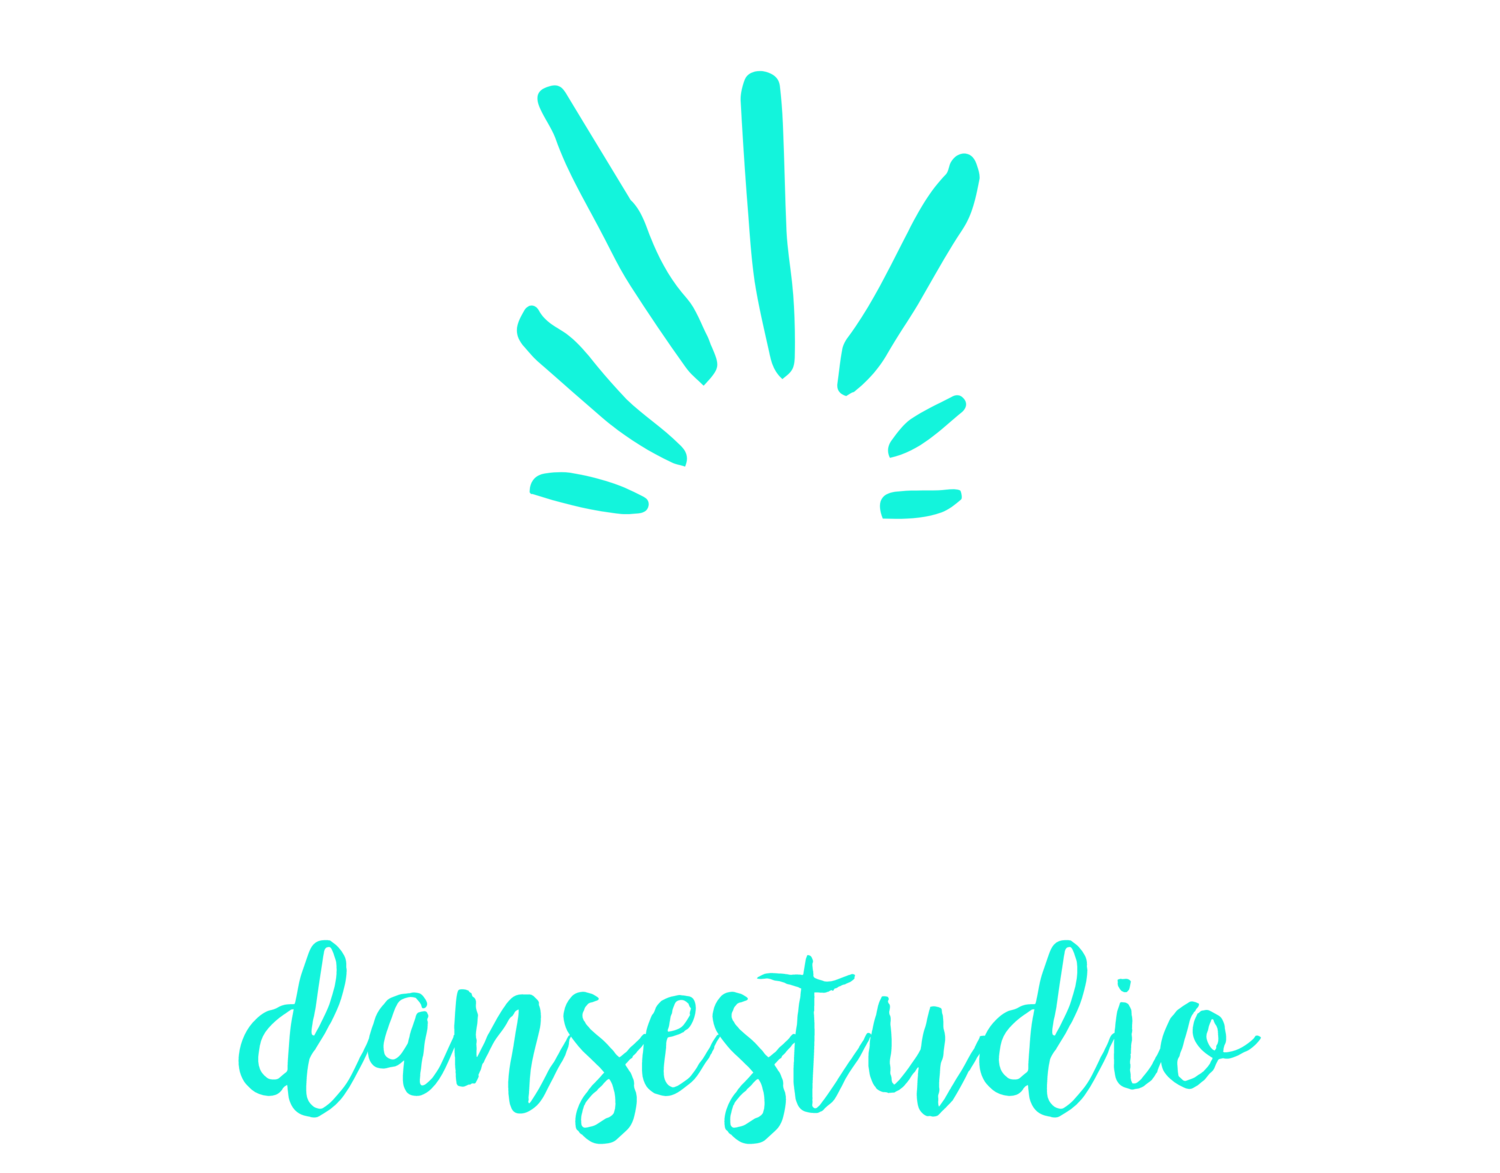 Point dansestudio - Mortensrud